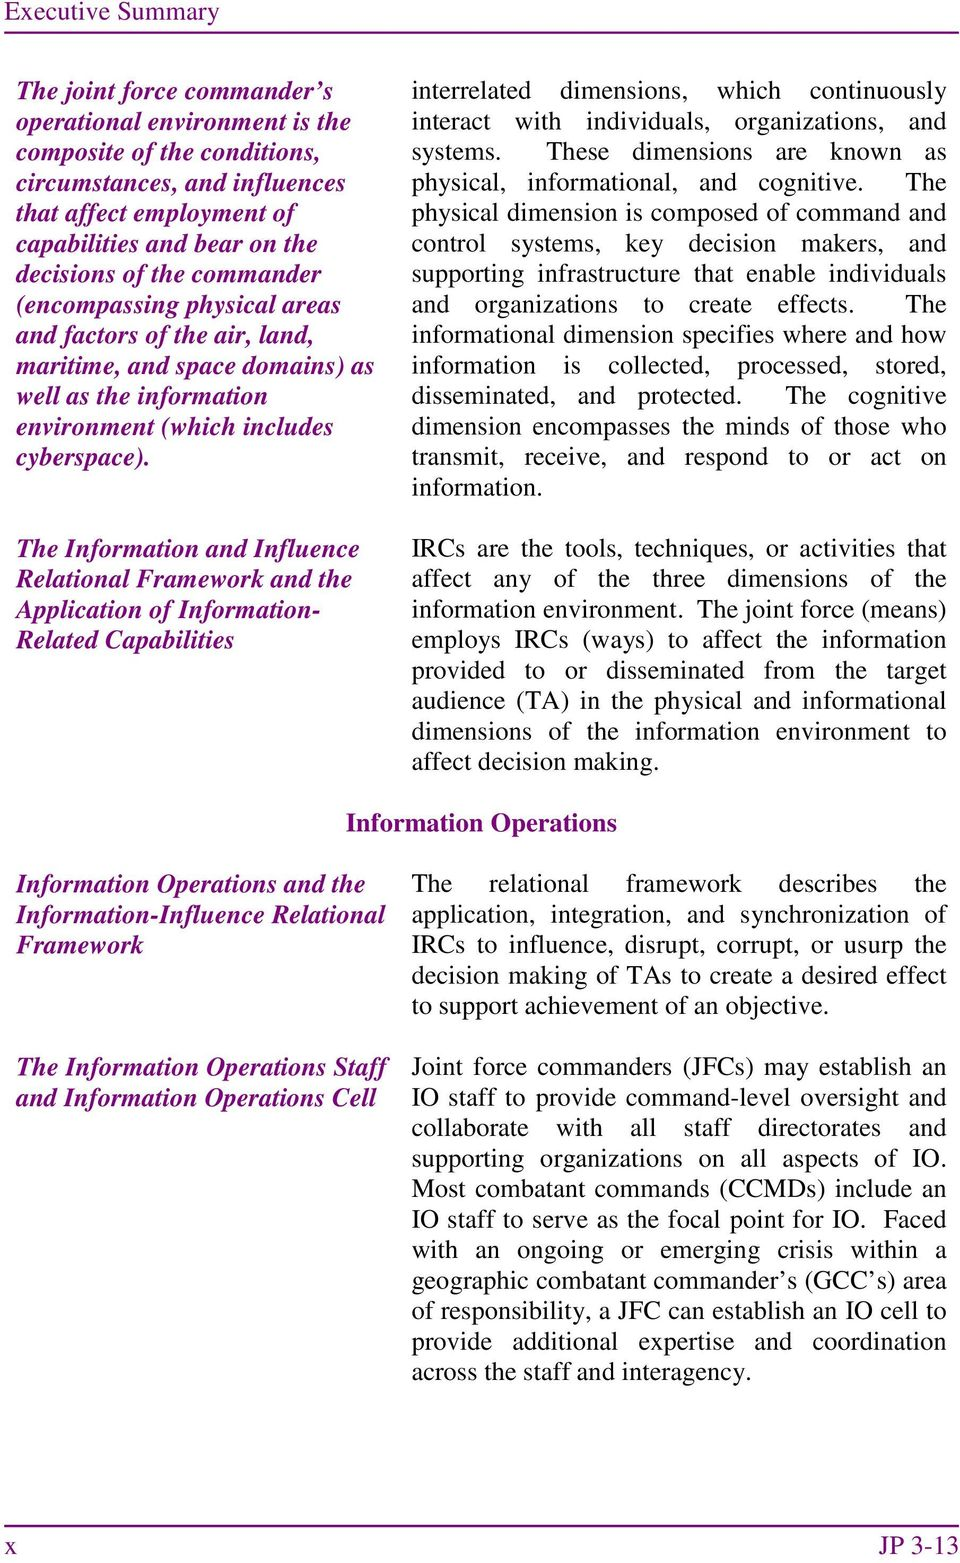 The Information and Influence Relational Framework and the Application of Information- Related Capabilities interrelated dimensions, which continuously interact with individuals, organizations, and